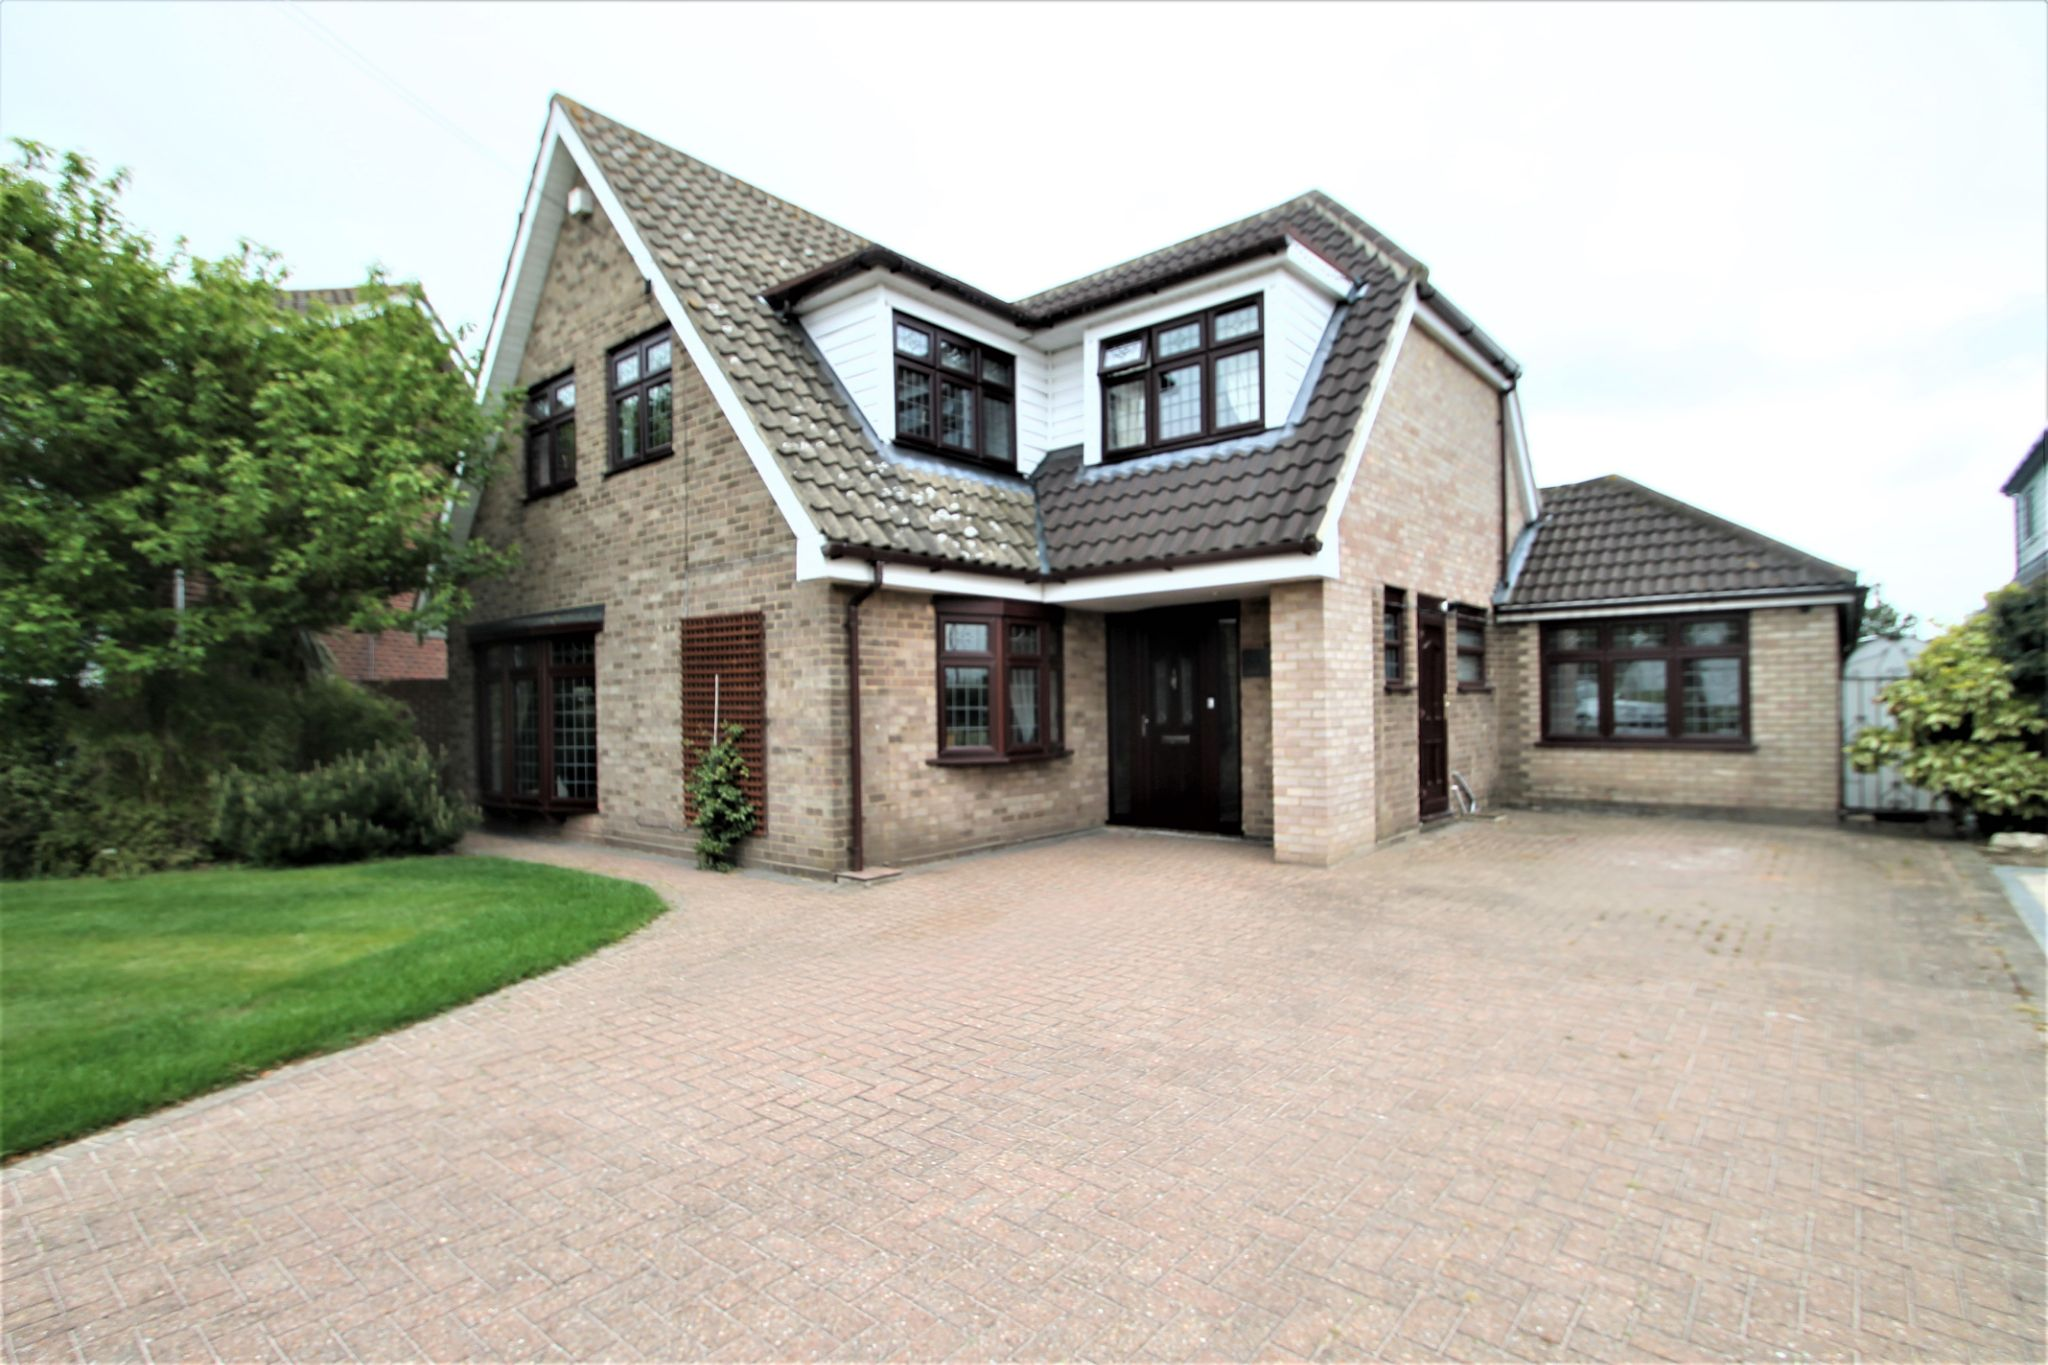 5 Bedroom Detached House For Sale - Exterior